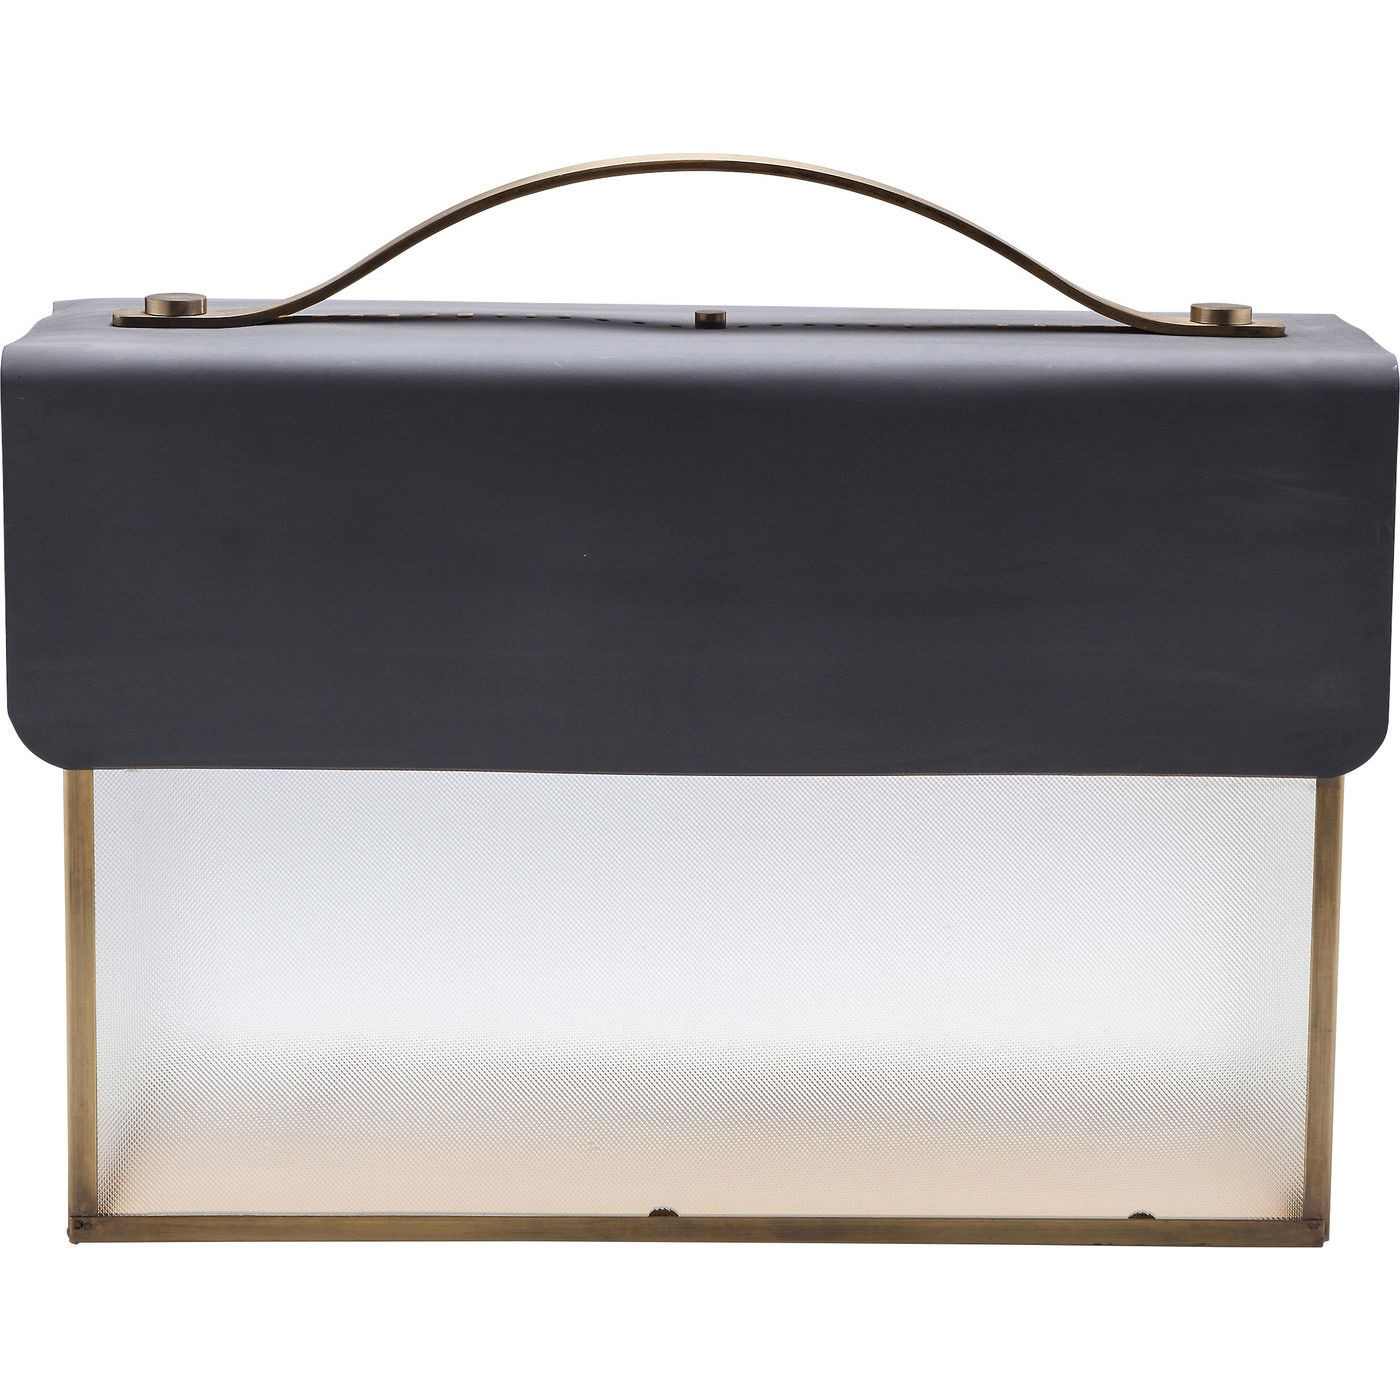 Image of   Gulvlampe Suitcase Lille